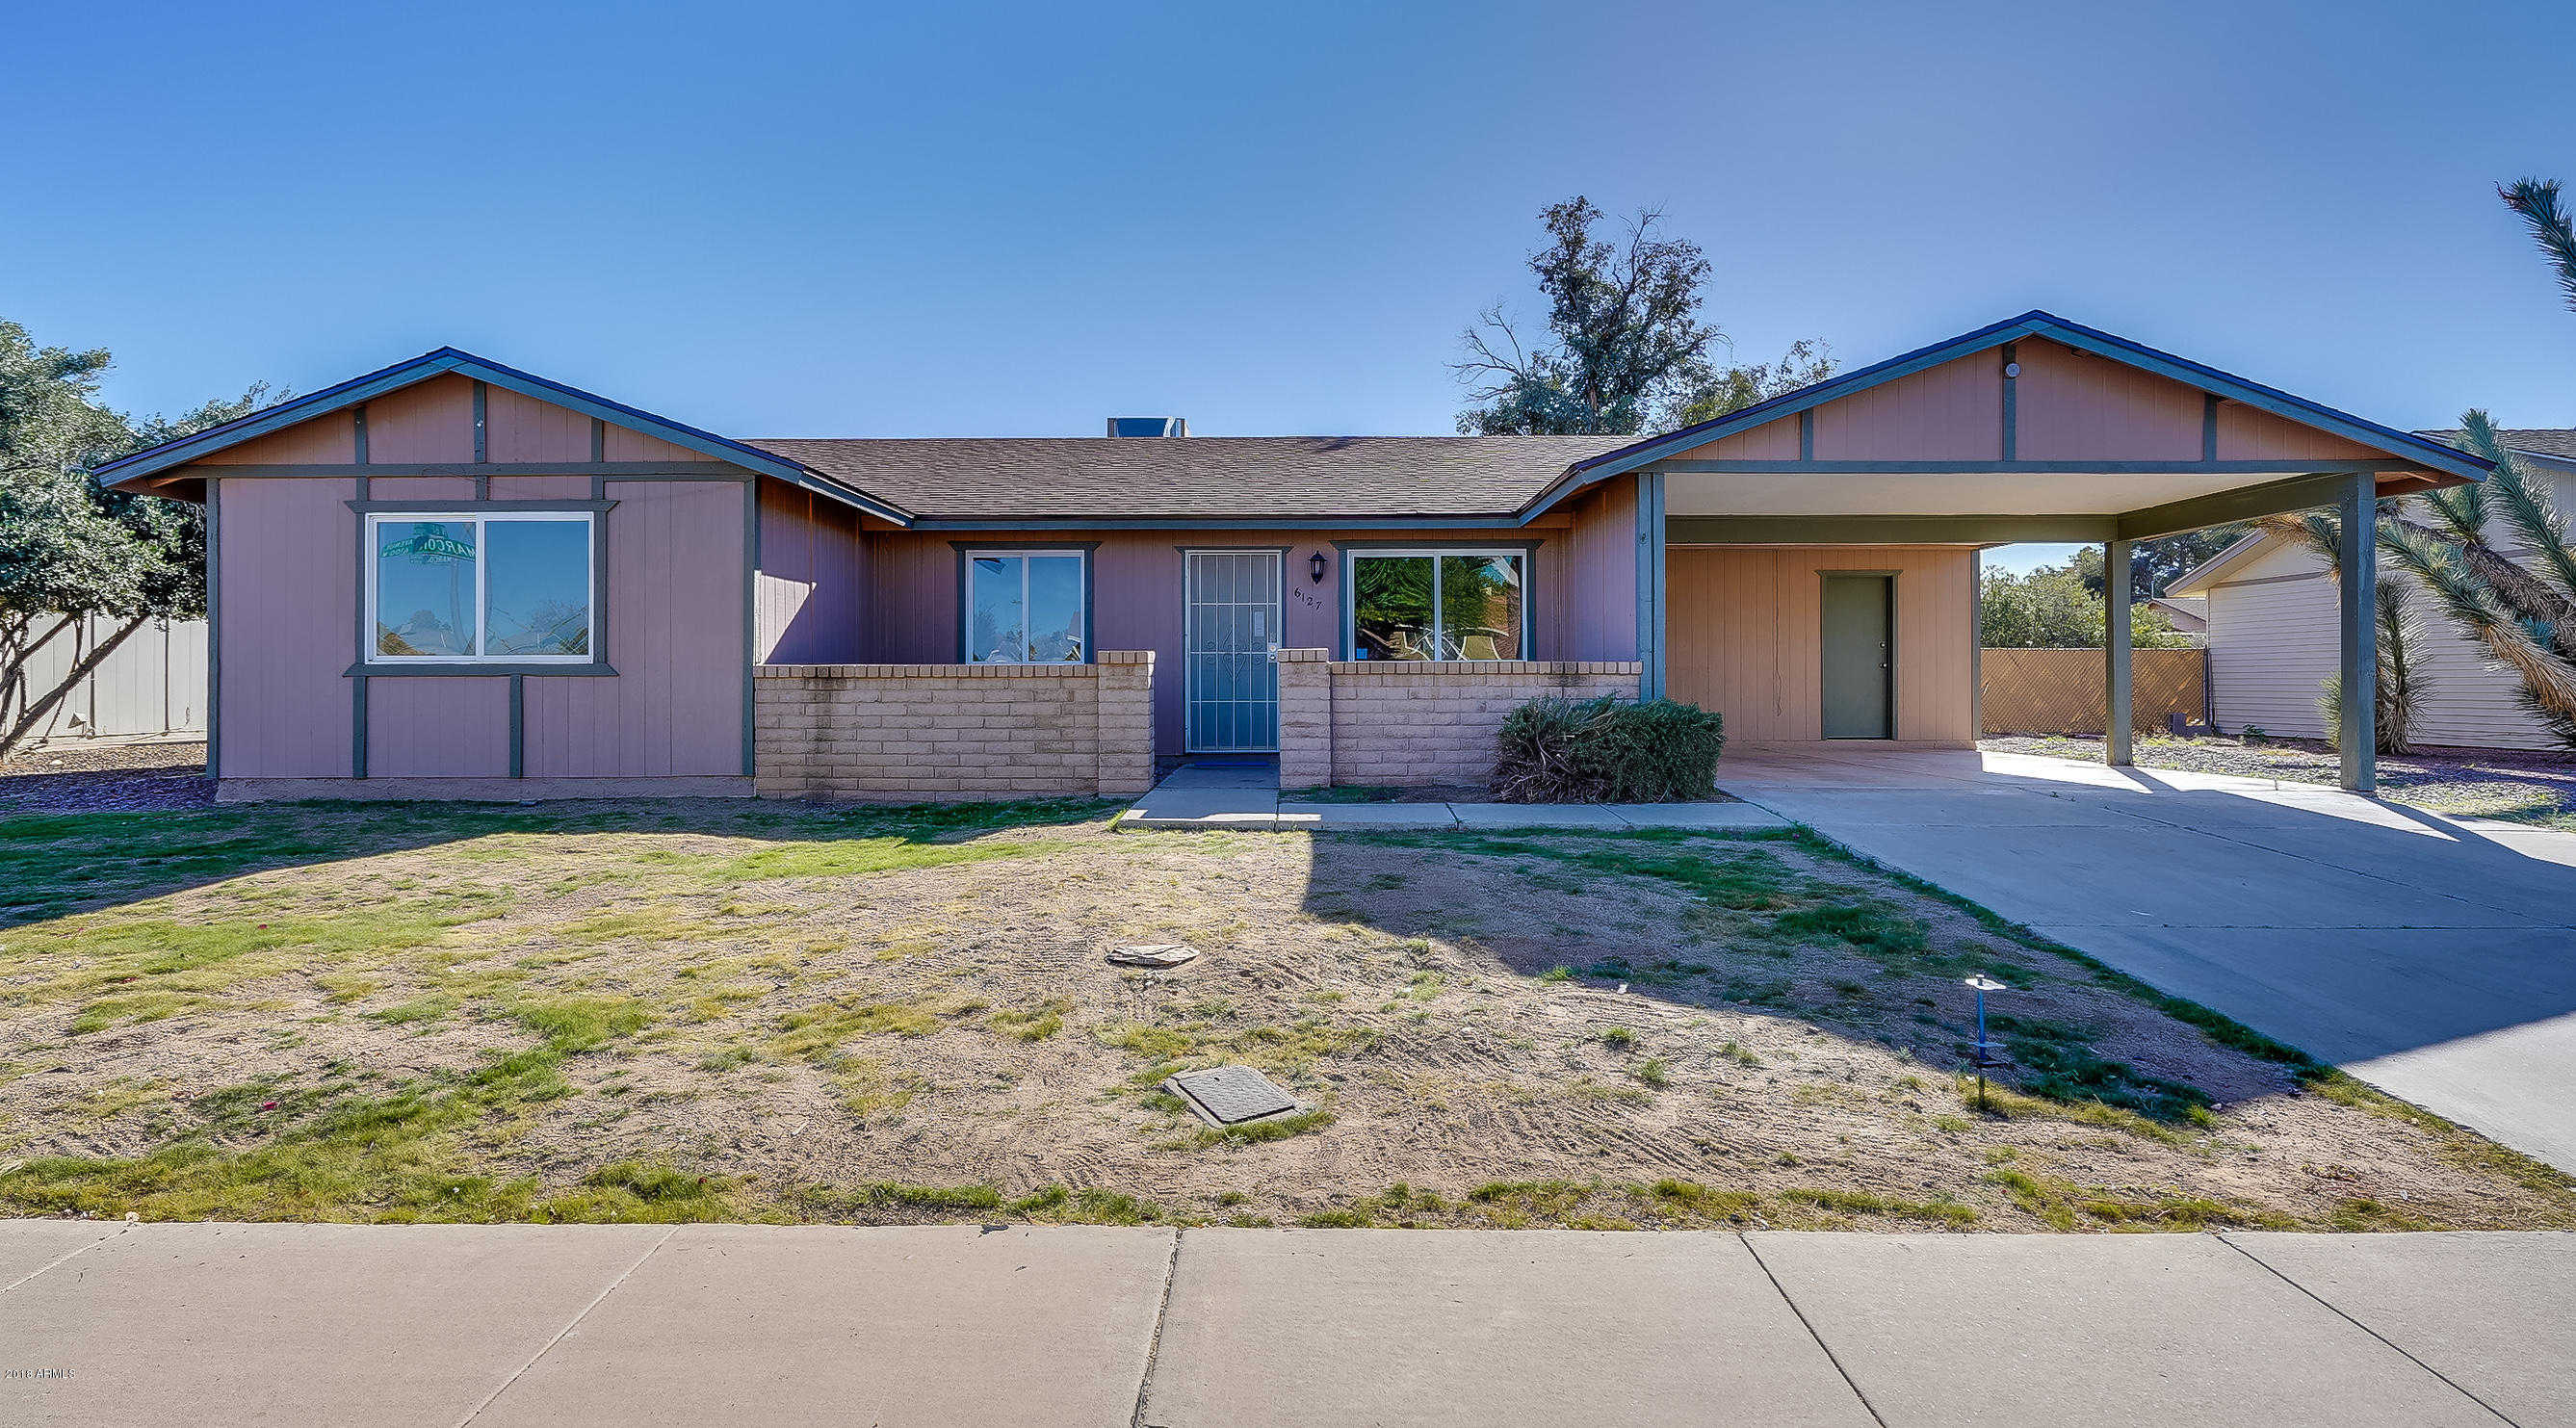 $227,000 - 4Br/2Ba - Home for Sale in Deerview Unit 23, Glendale